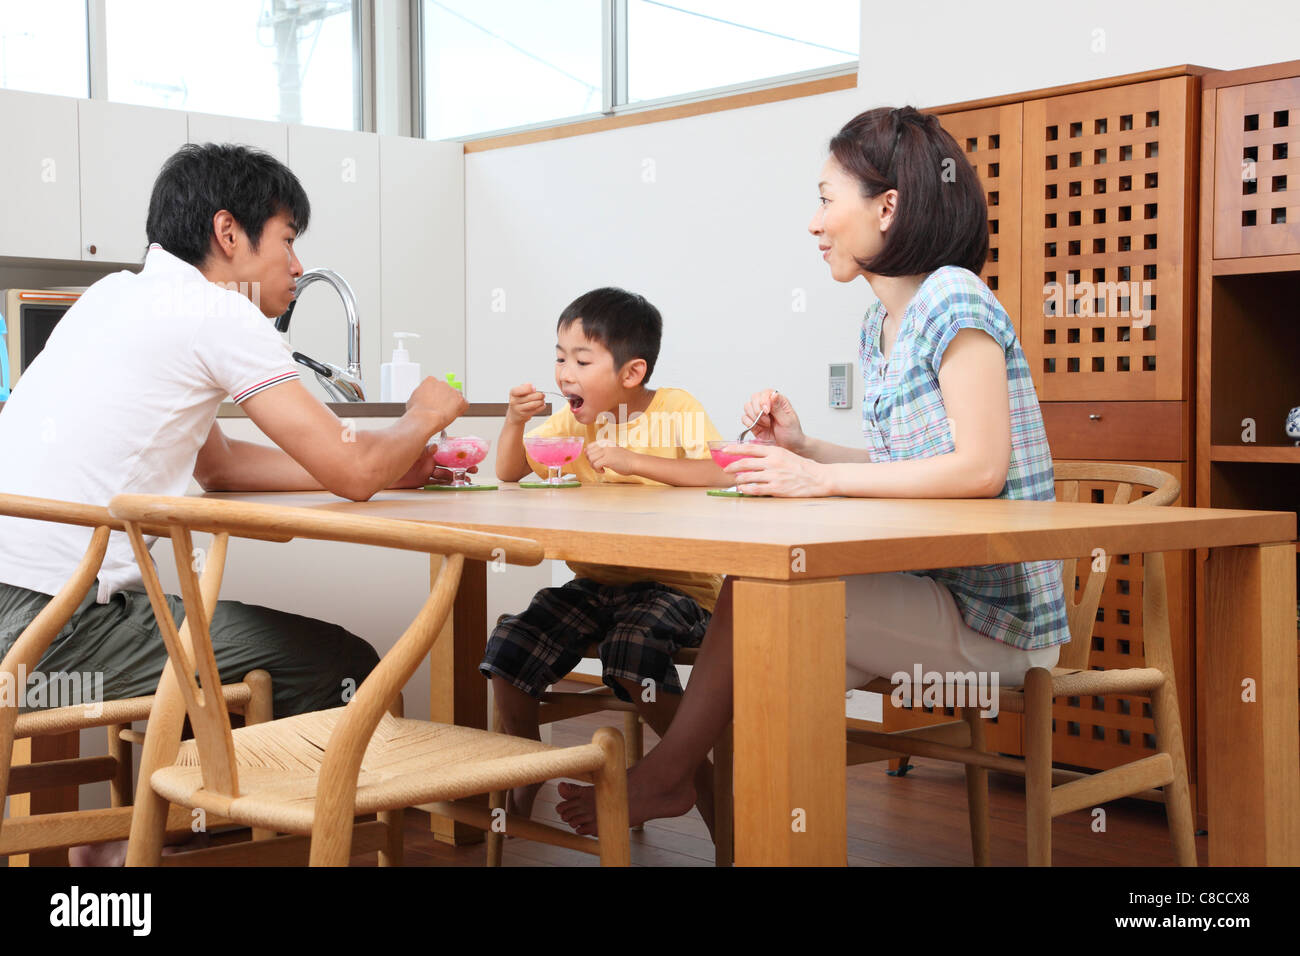 Family eating shaved ice together Stock Photo